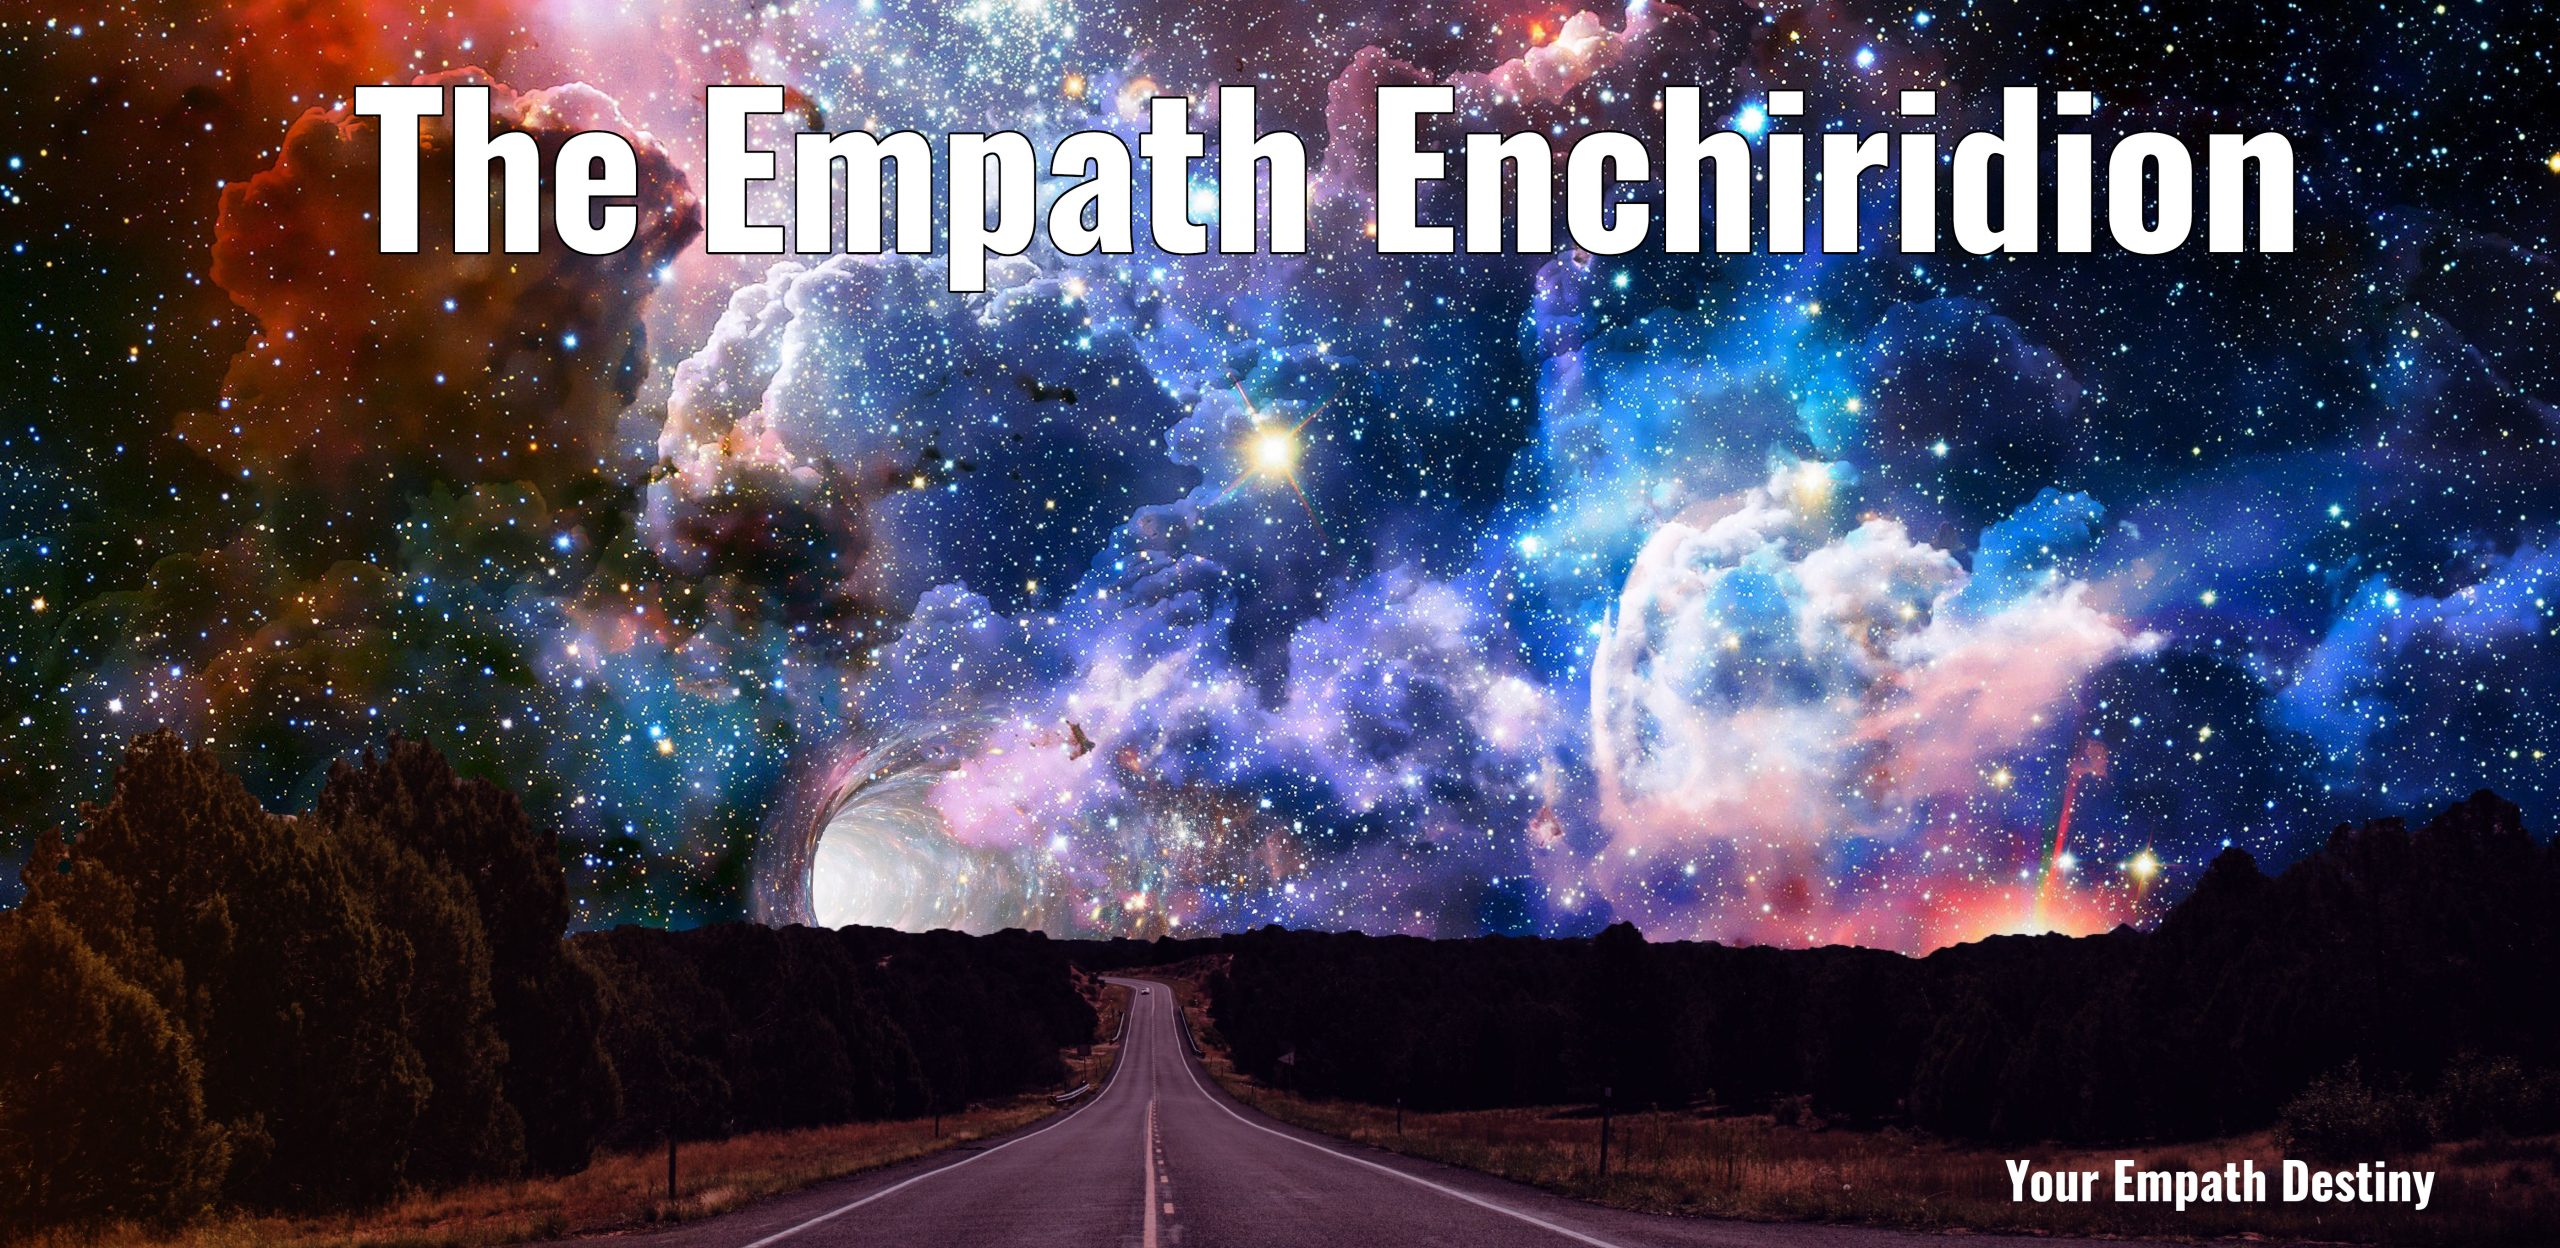 The Empath Enchiridion